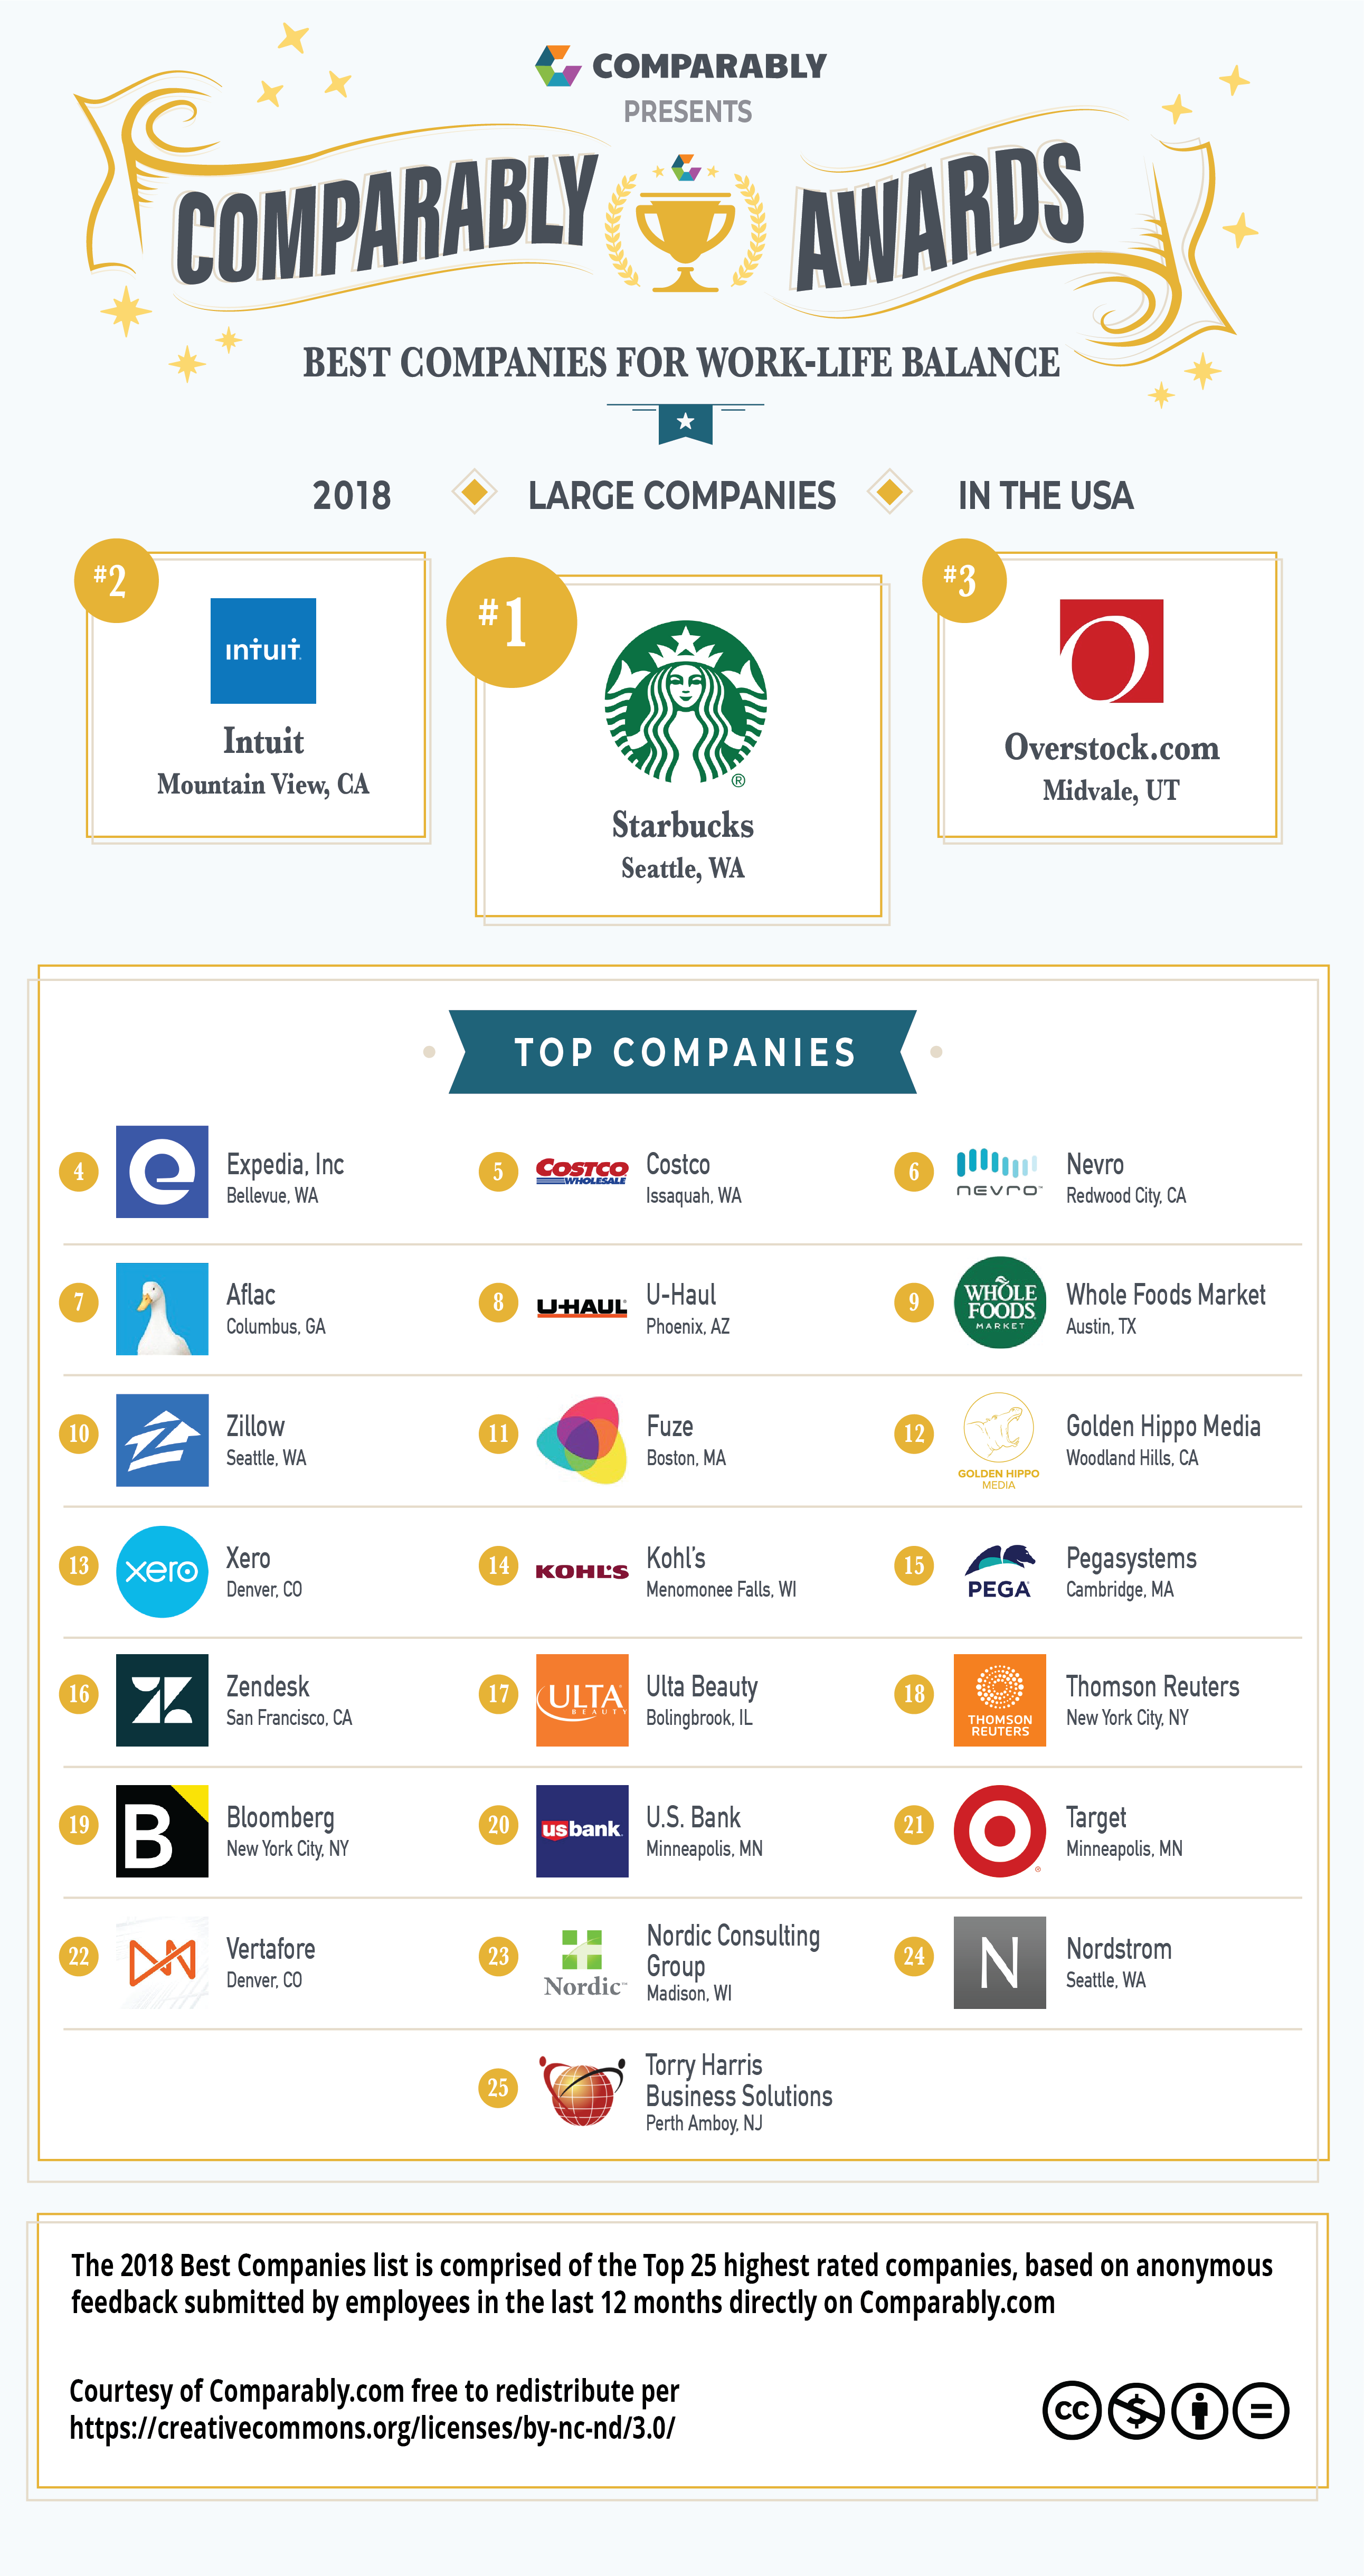 Comparably Awards Results